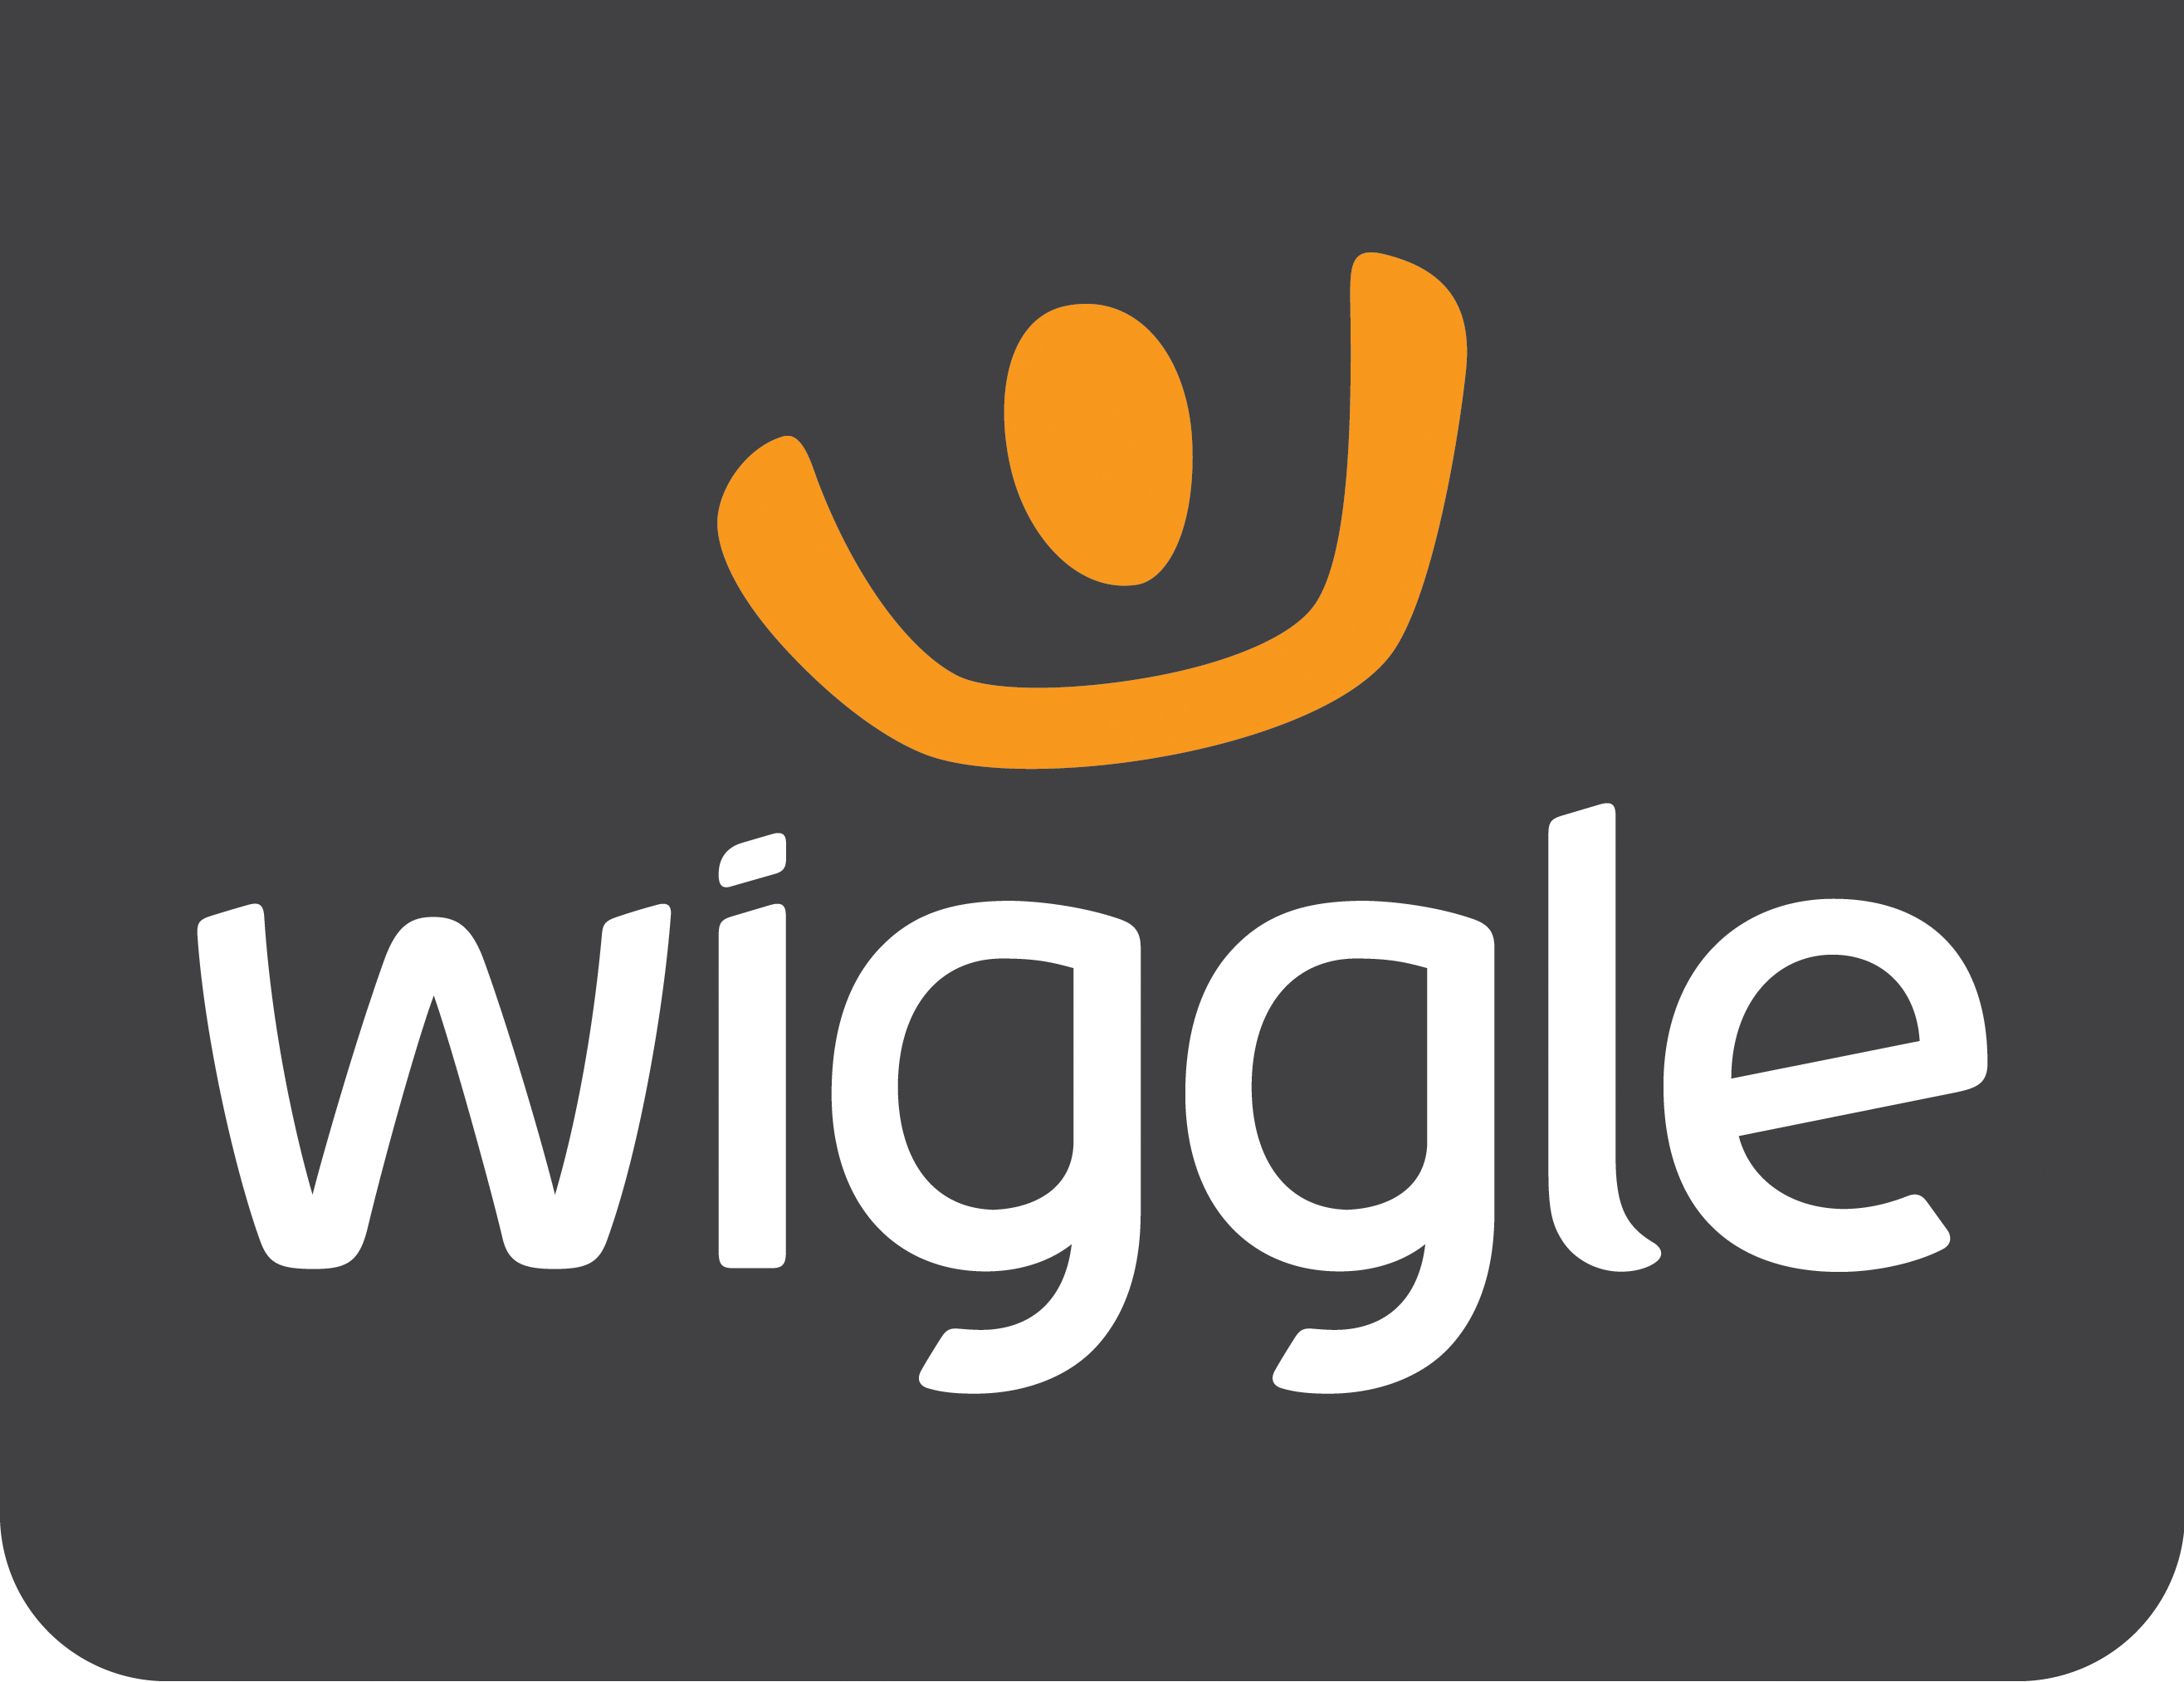 Wiggle in tandem with Doddle